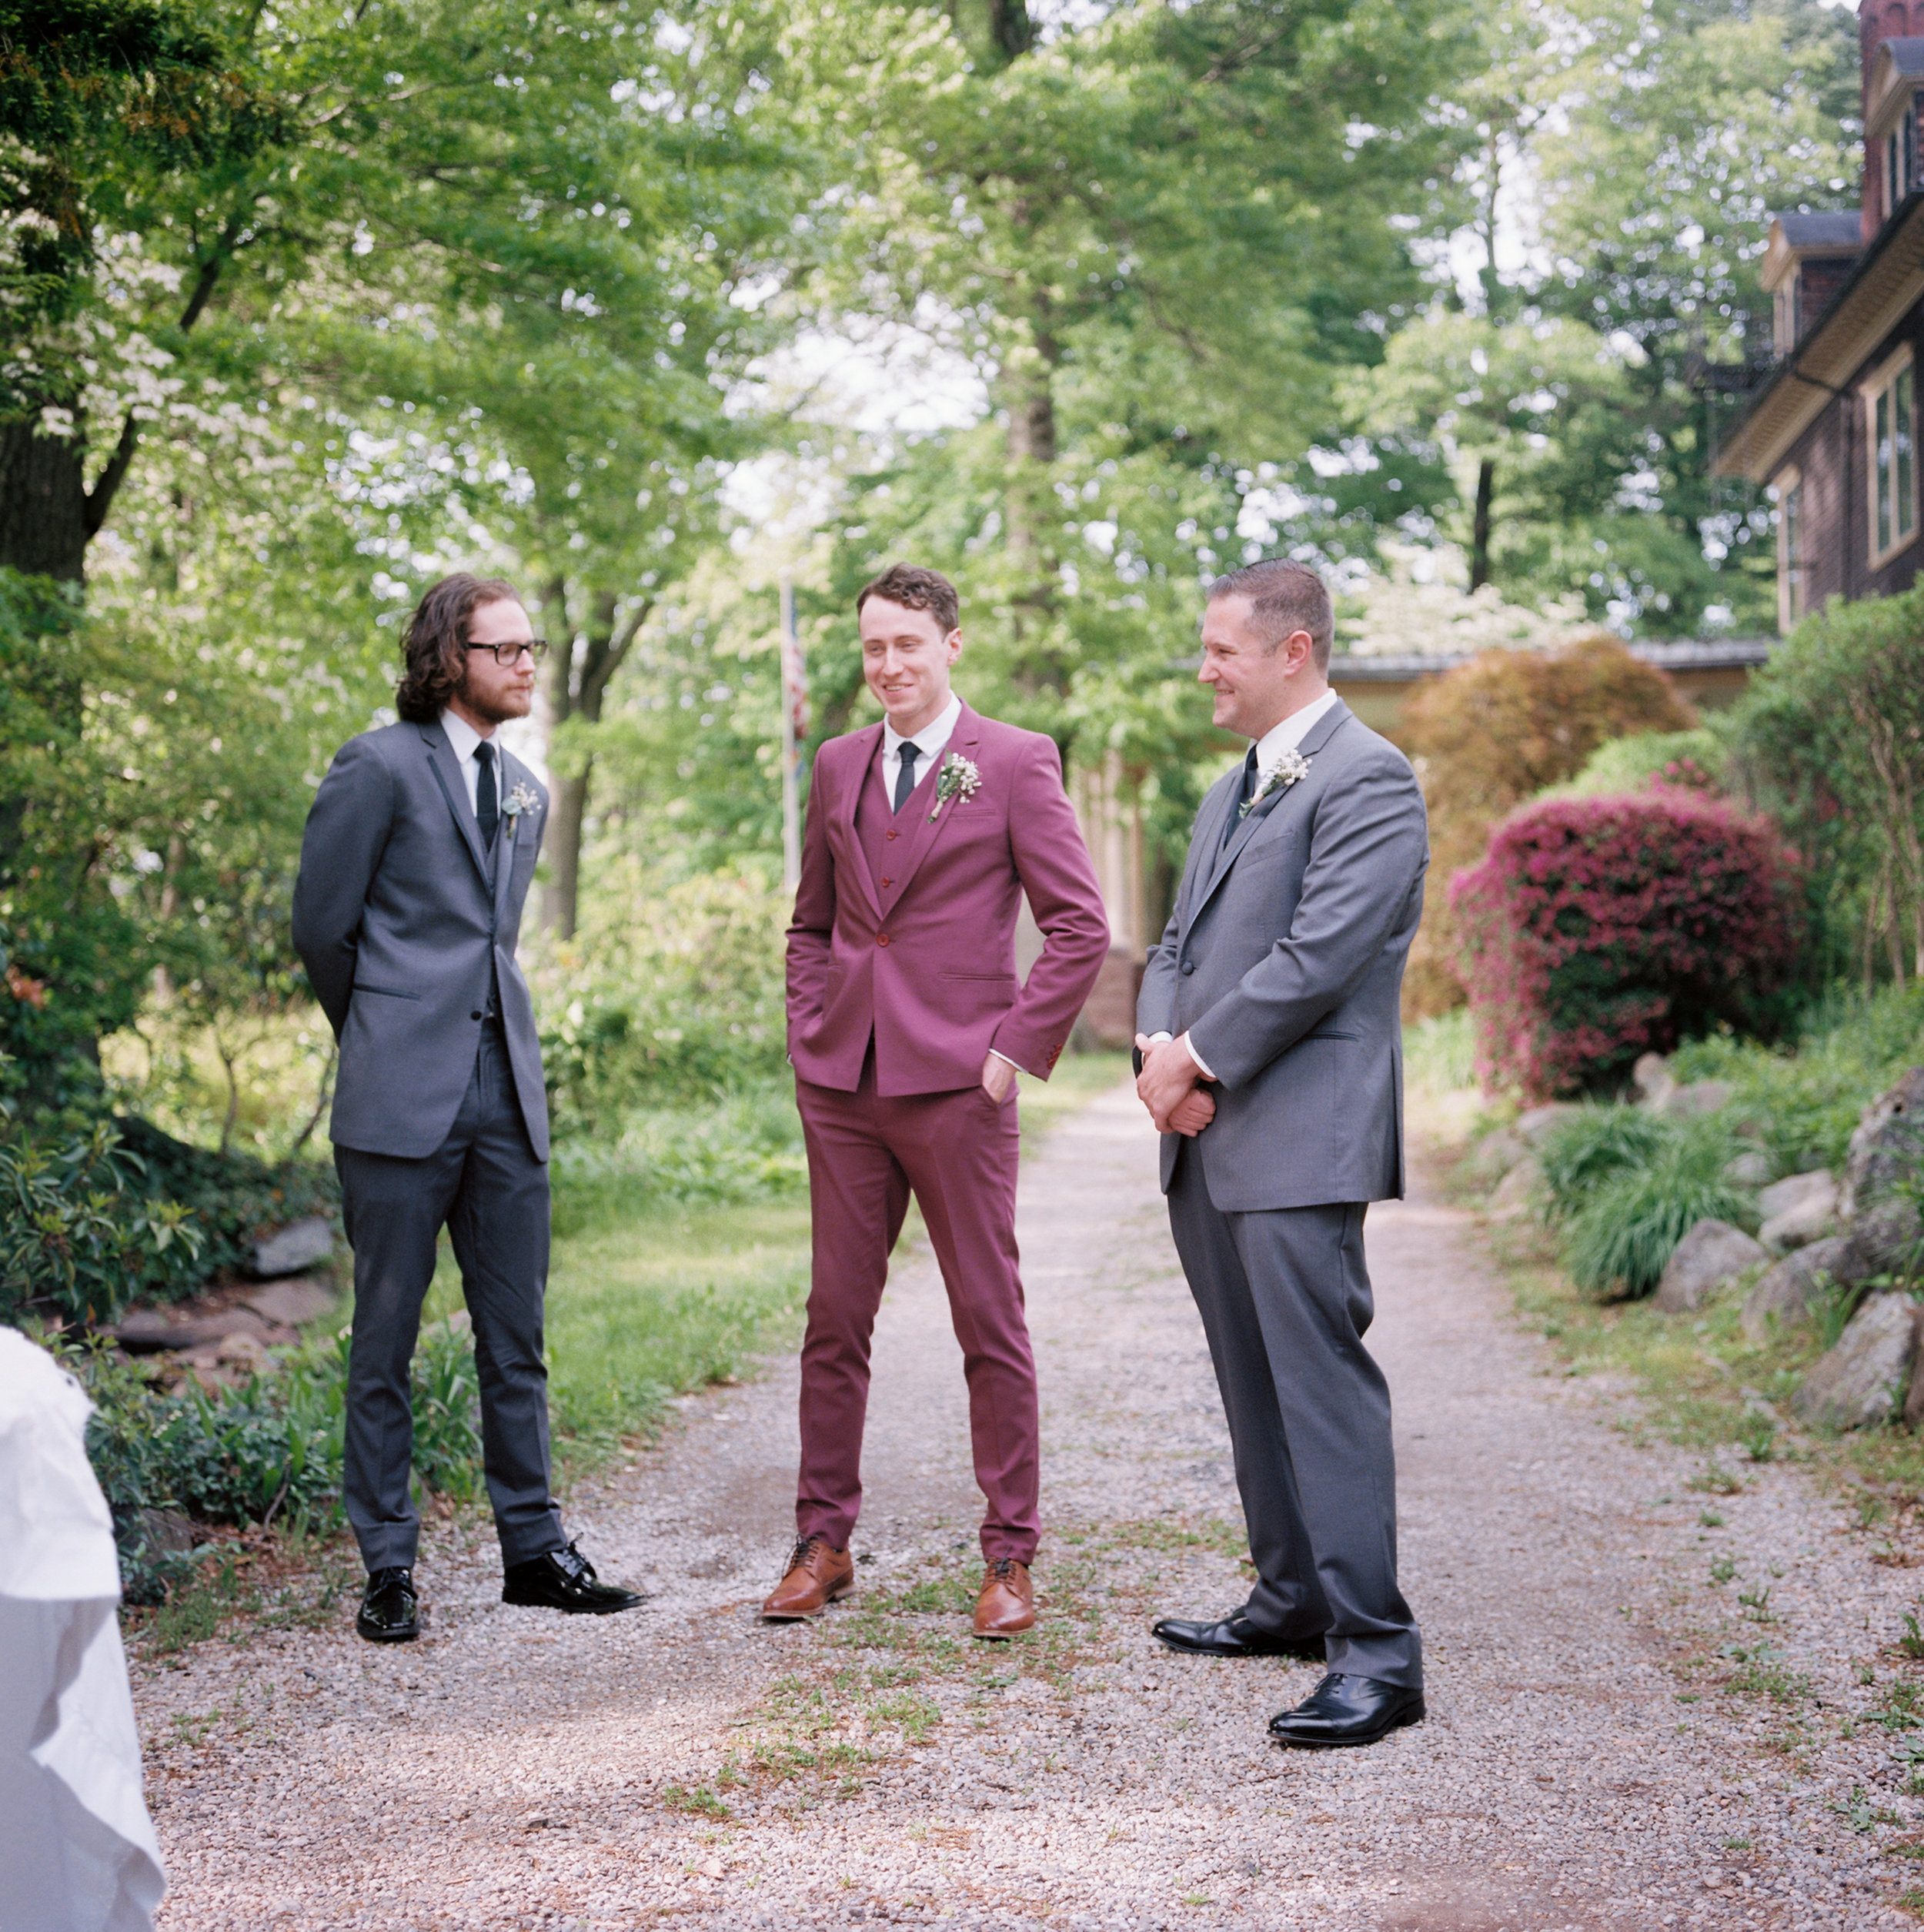 Mariangel+Kieran-Oakeside Mansion Wedding-Bloomfield New Jersey-Film Photography- Olivia Christina Photo-1 (7).JPG